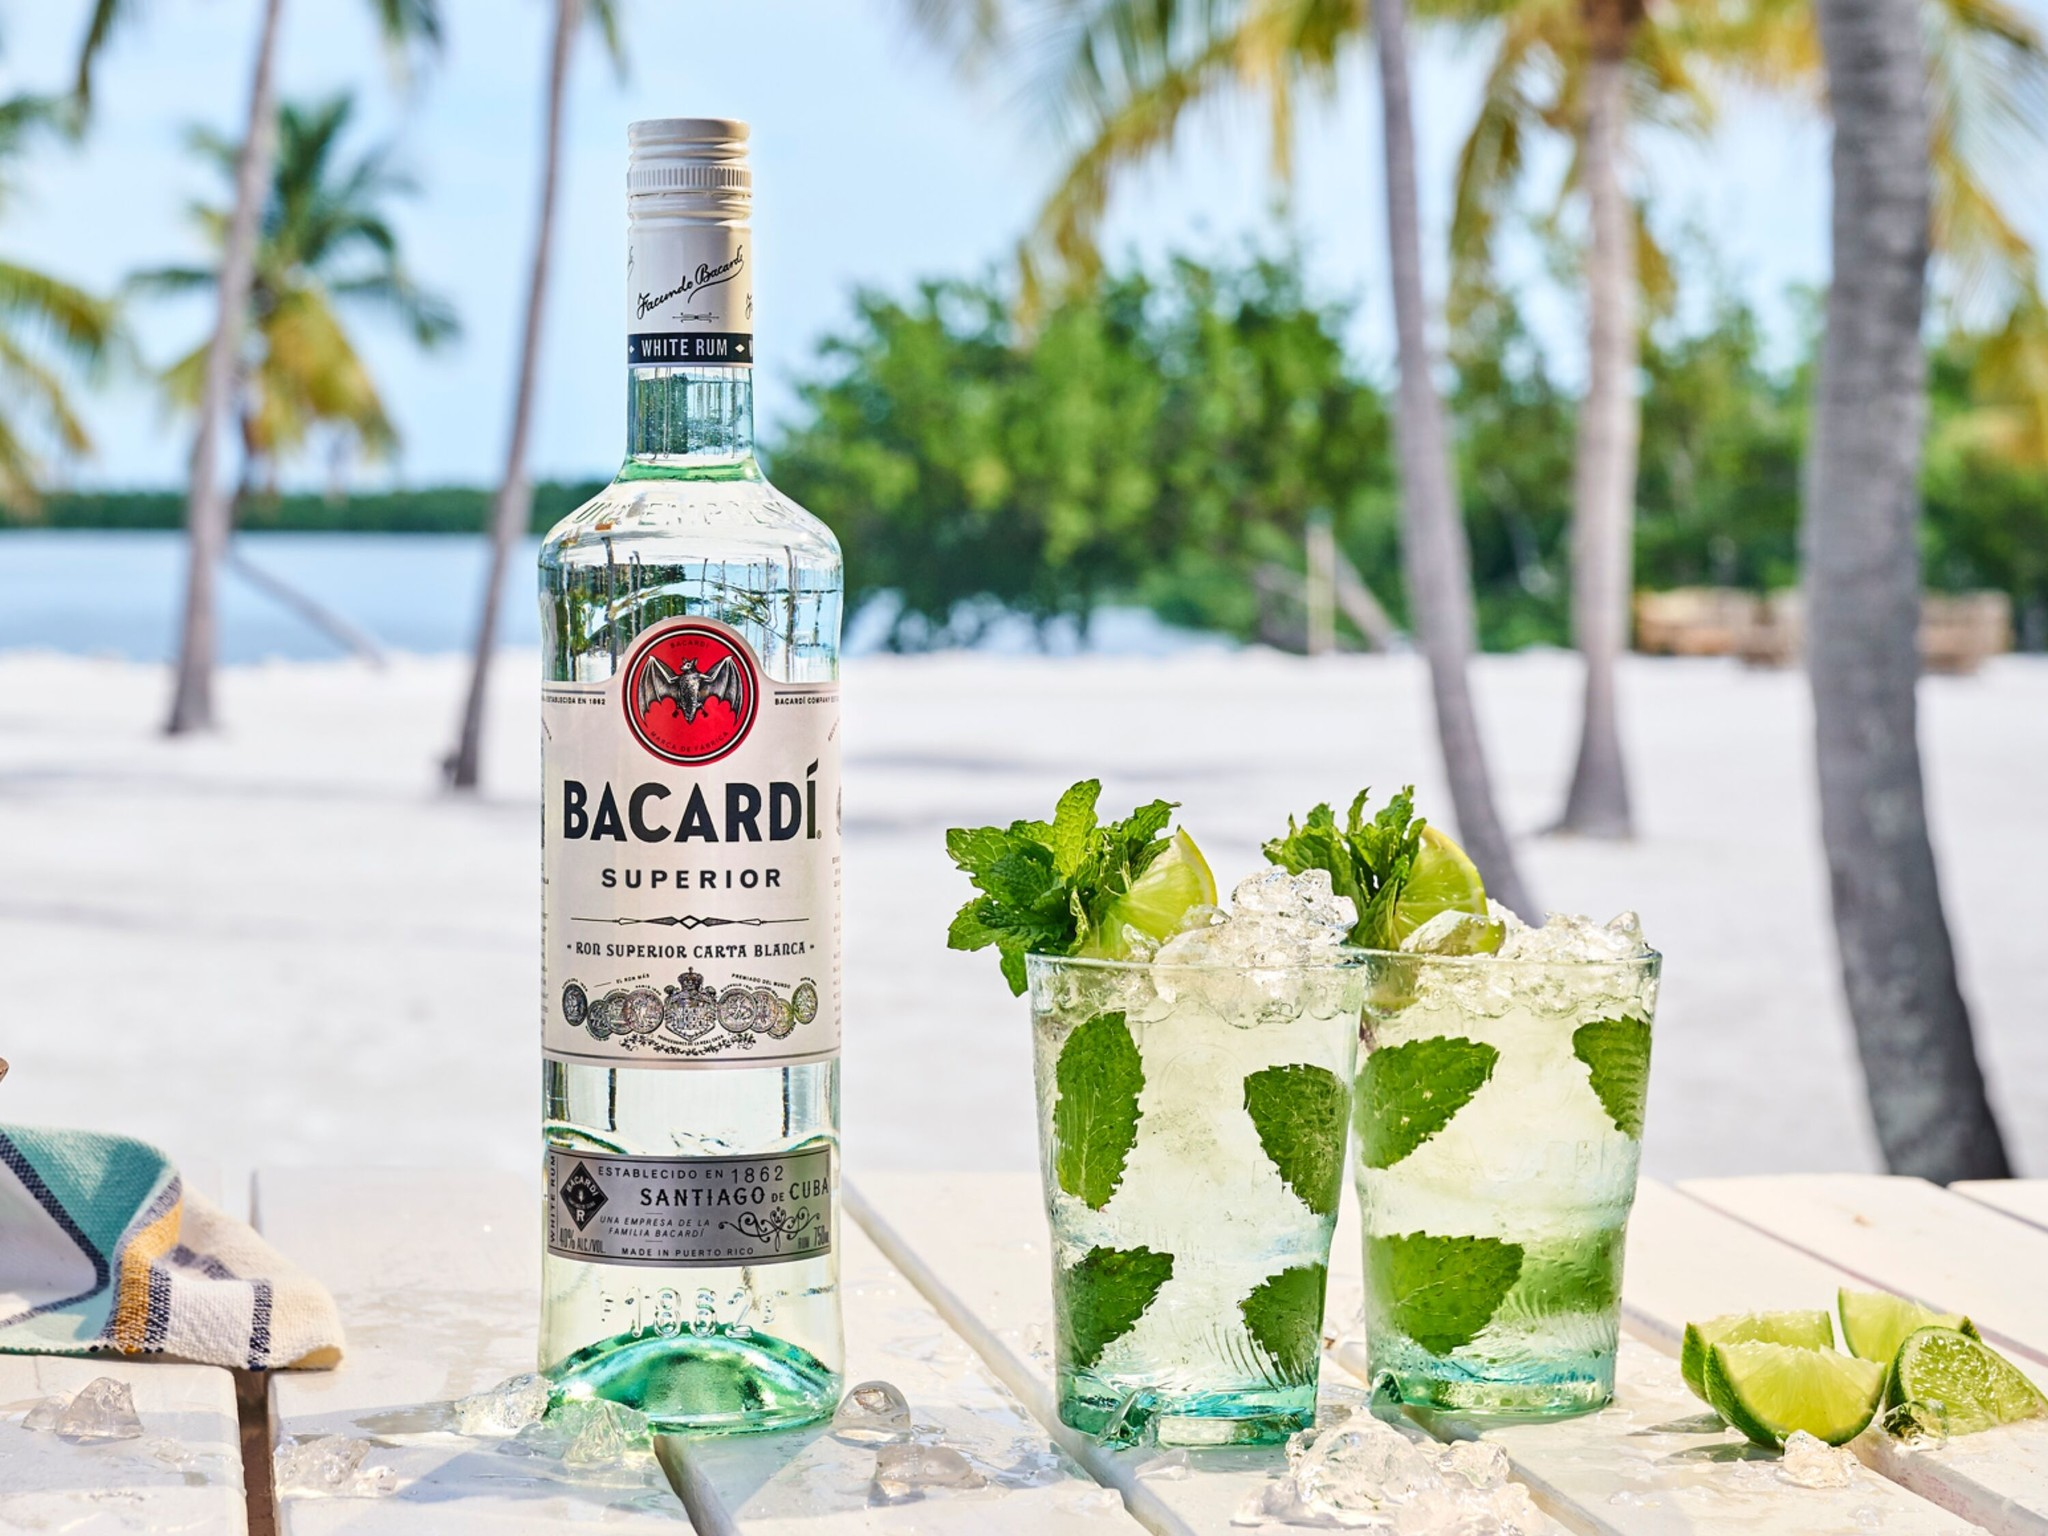 The Original Bacardi Cocktail - MOJITO